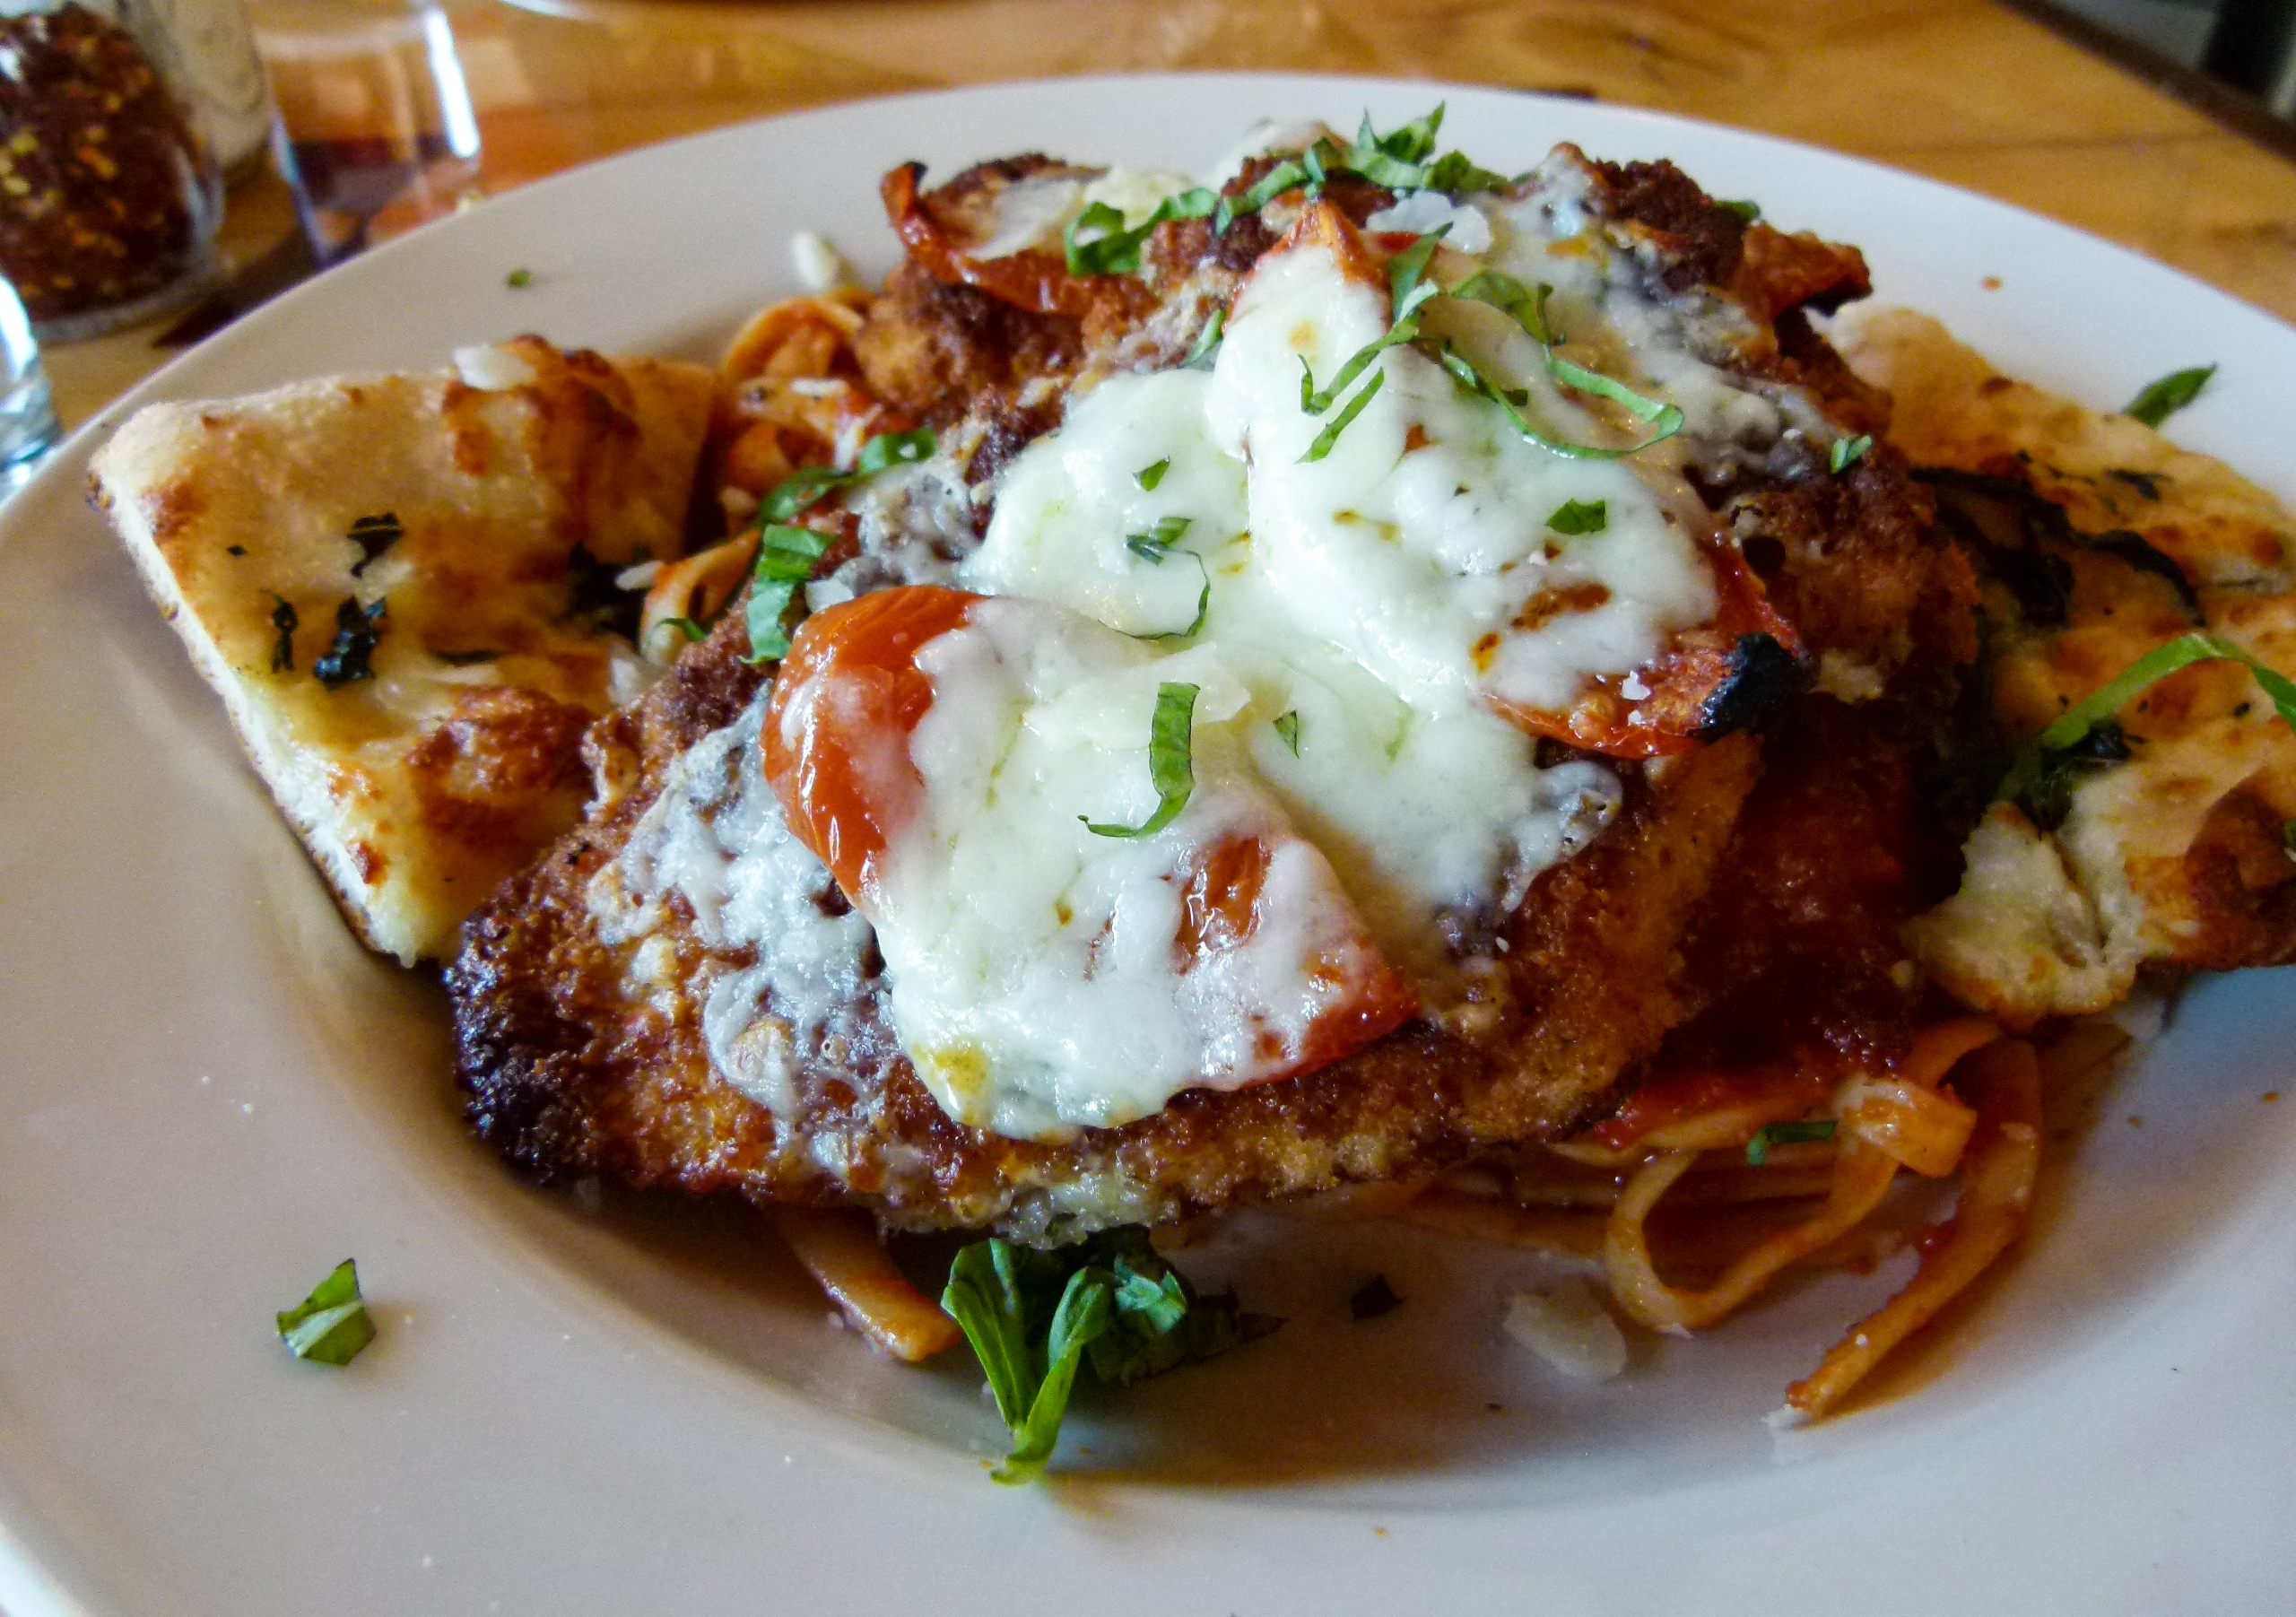 Chicken Parmesan atop fettuccine and flanked by garlic bread.